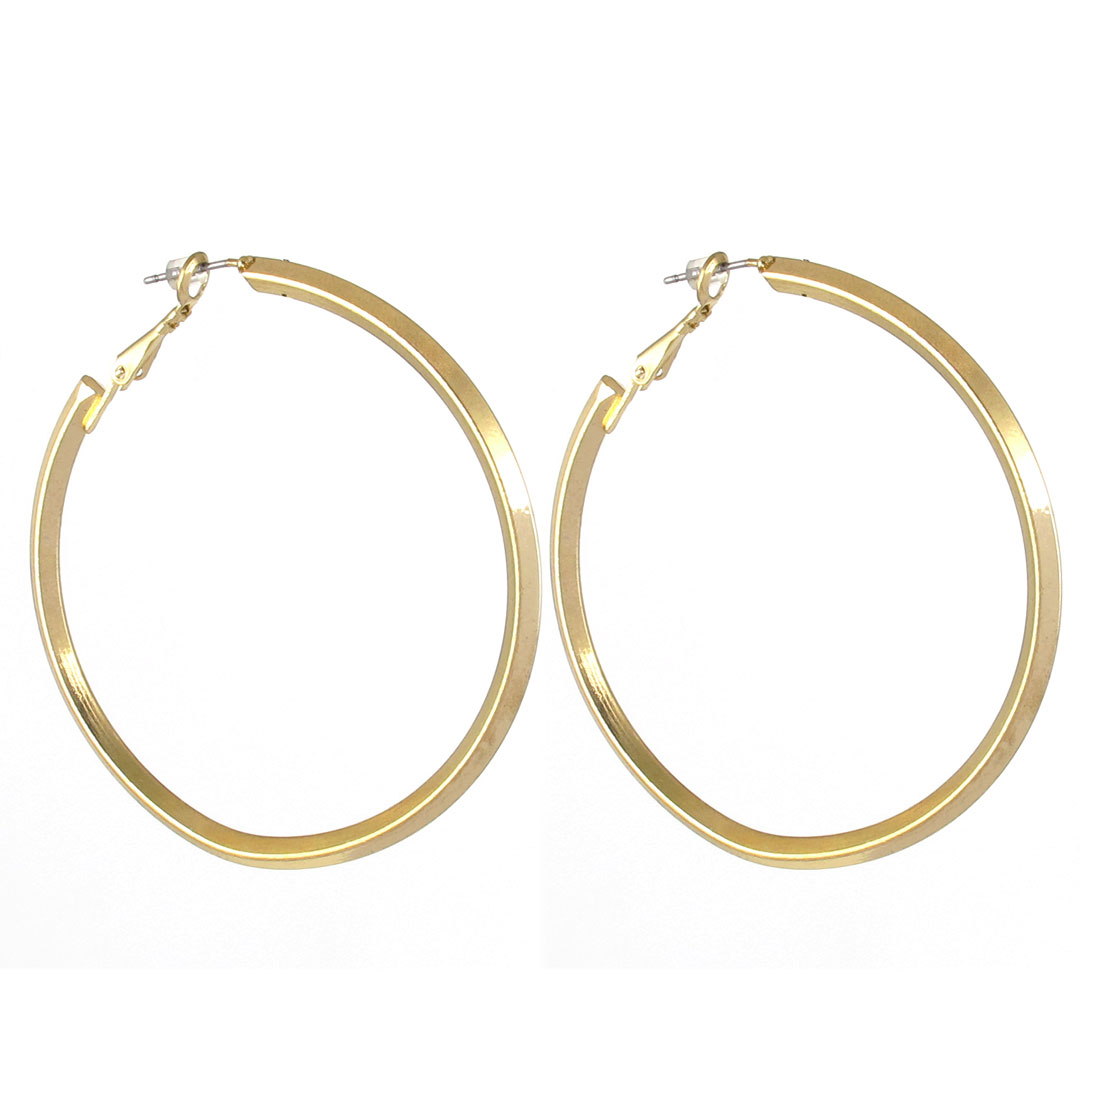 "2.3"" Dia Gold Tone Metal Elegant Stylish Narrow Smooth Edge Round Circle Hoop Pierced Earrings Pair for Lady Women"